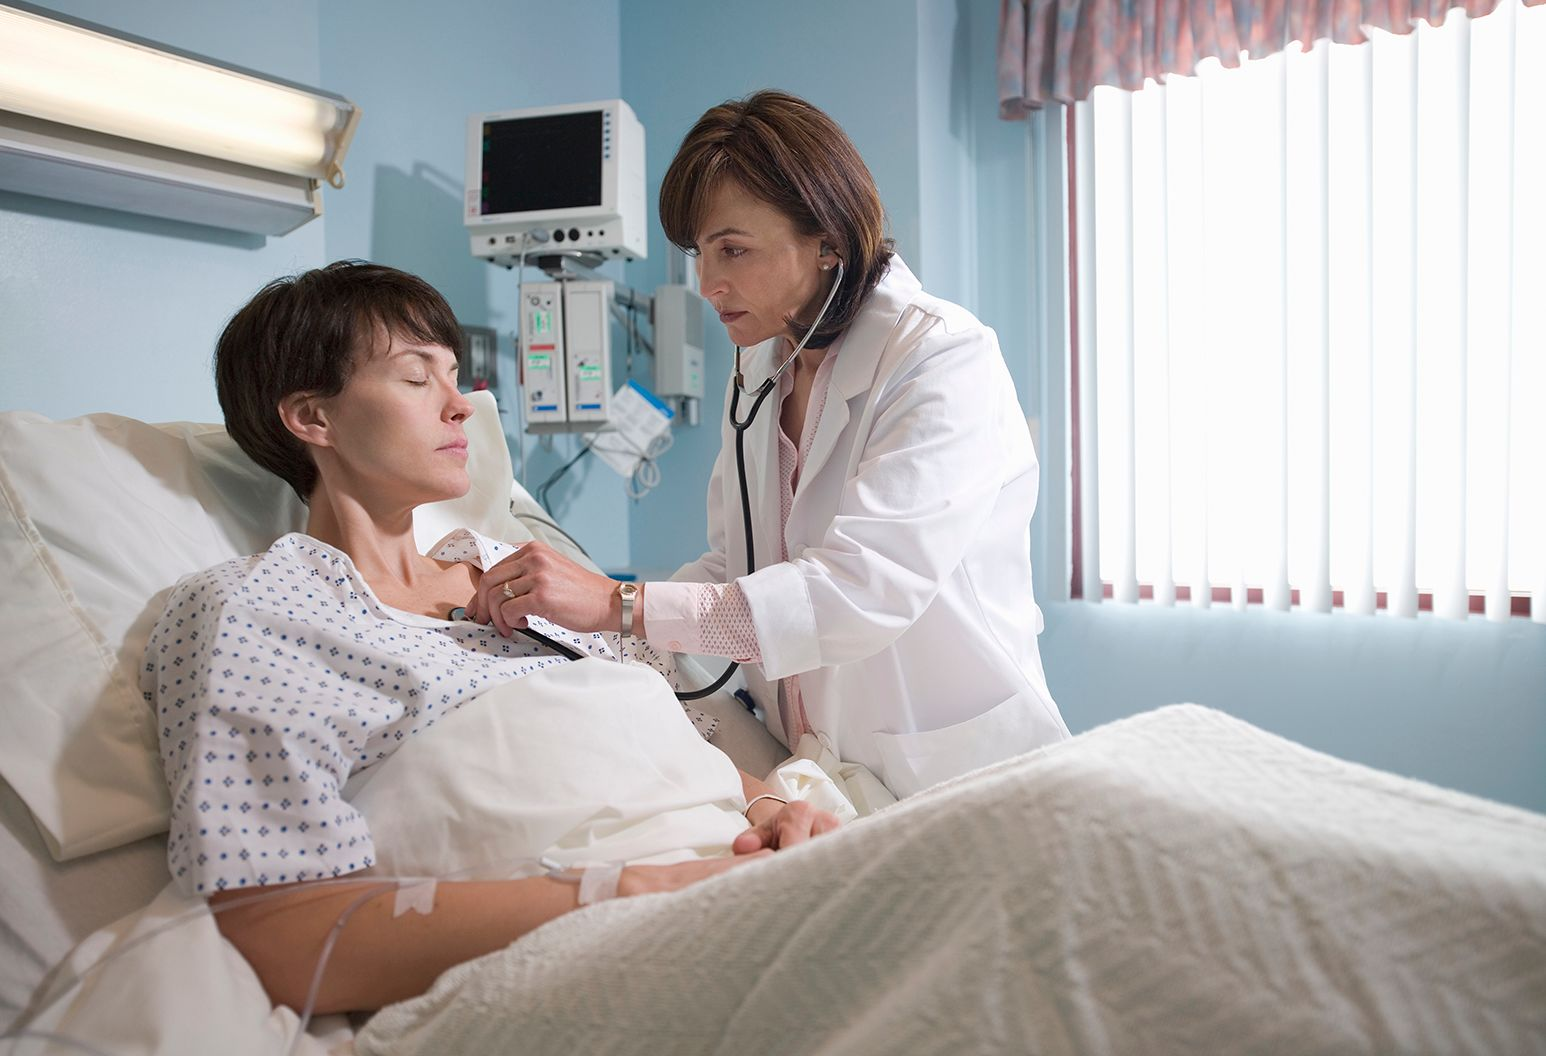 Female doctor examines female patient in hospital room